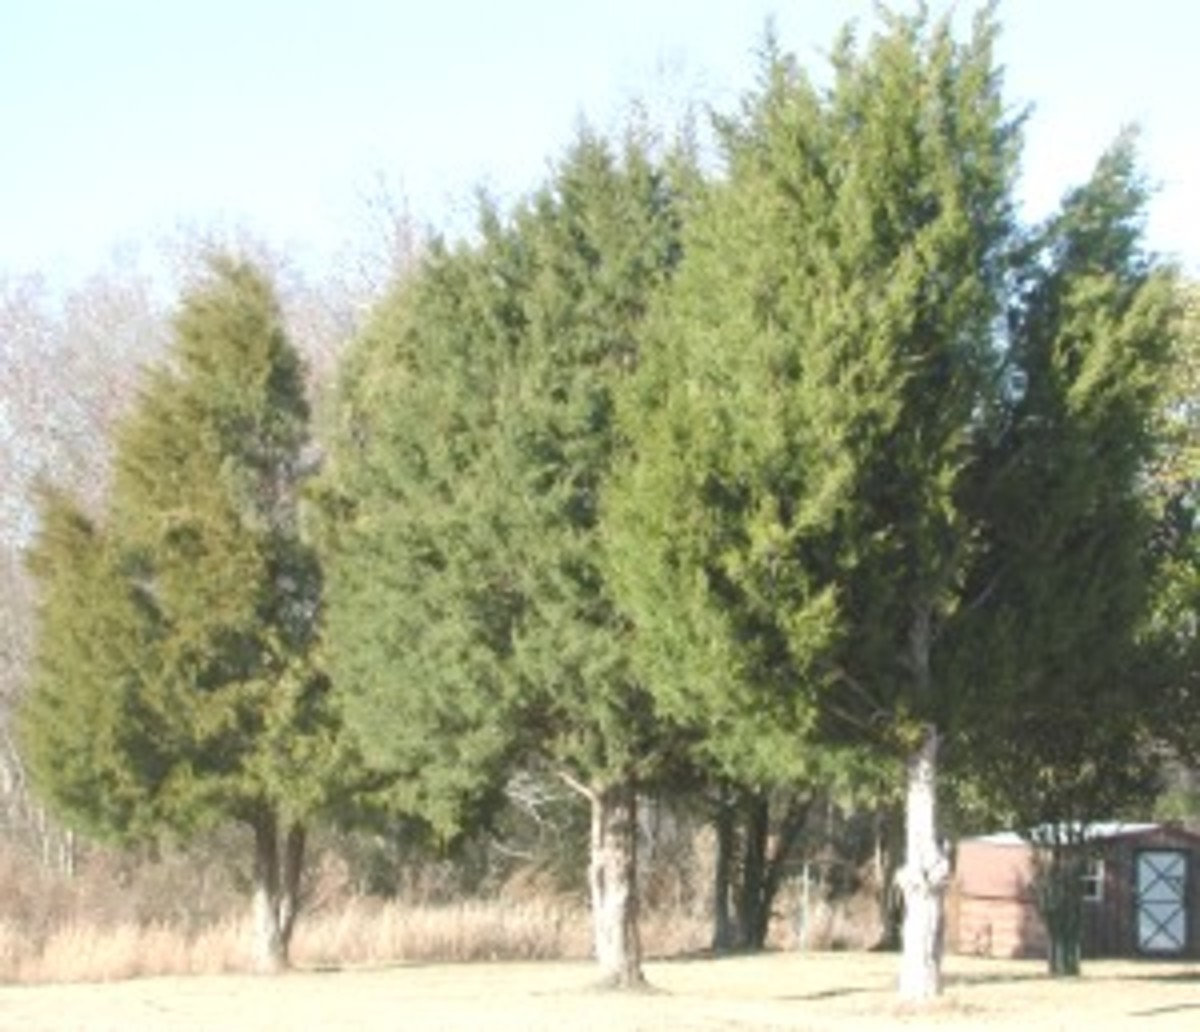 The eastern redcedar (Juniperus virginiana) is sometimes called the eastern juniper